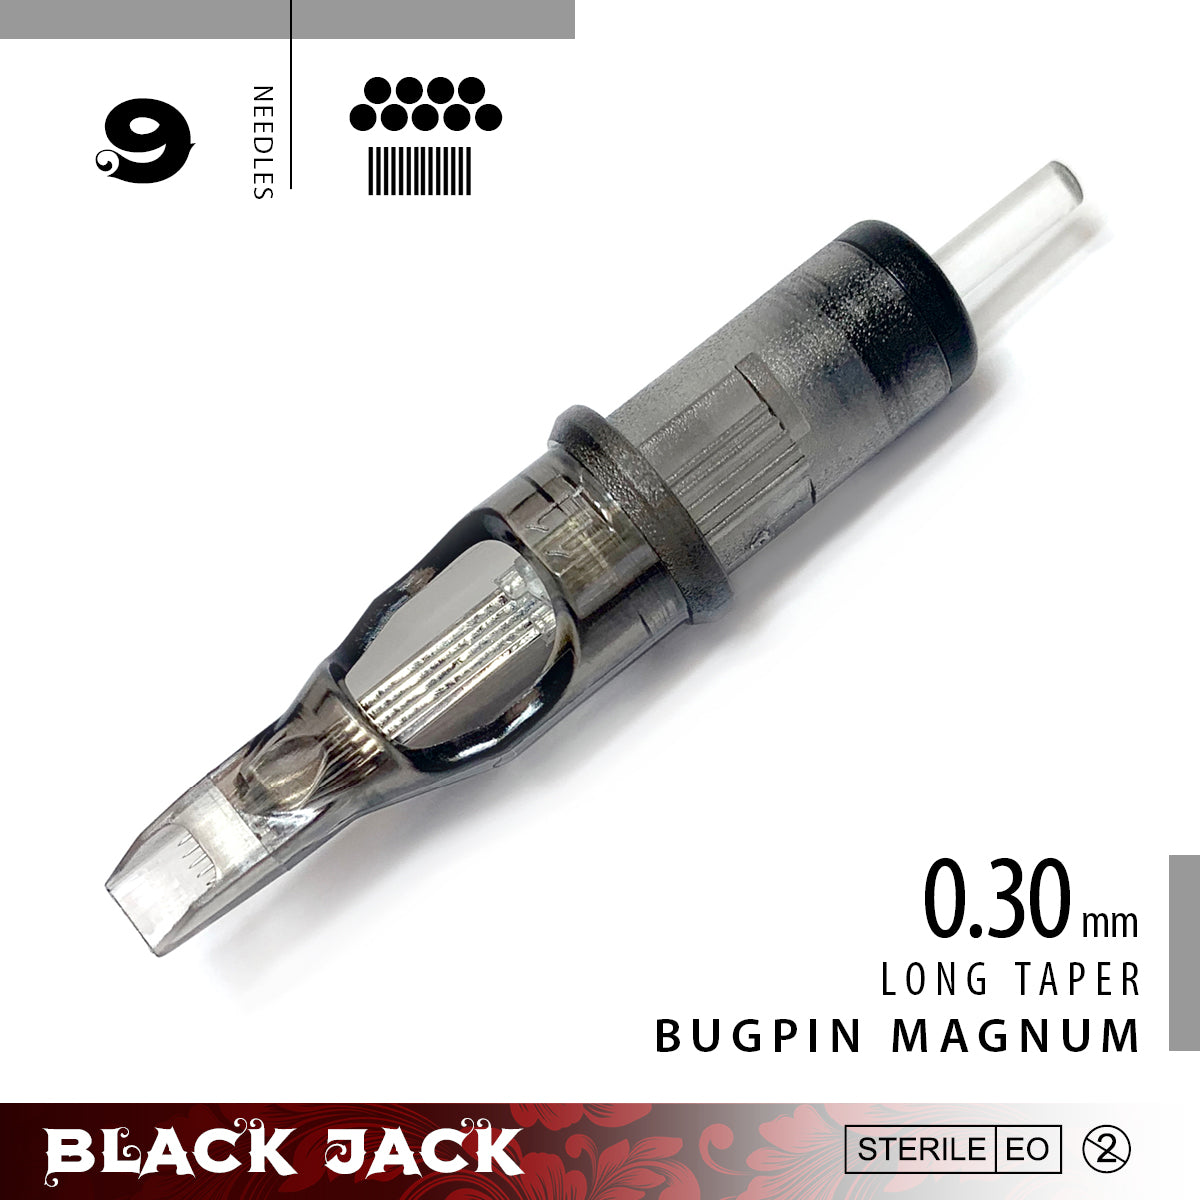 Black Jack Bugpin Magnum Cartridge Needles